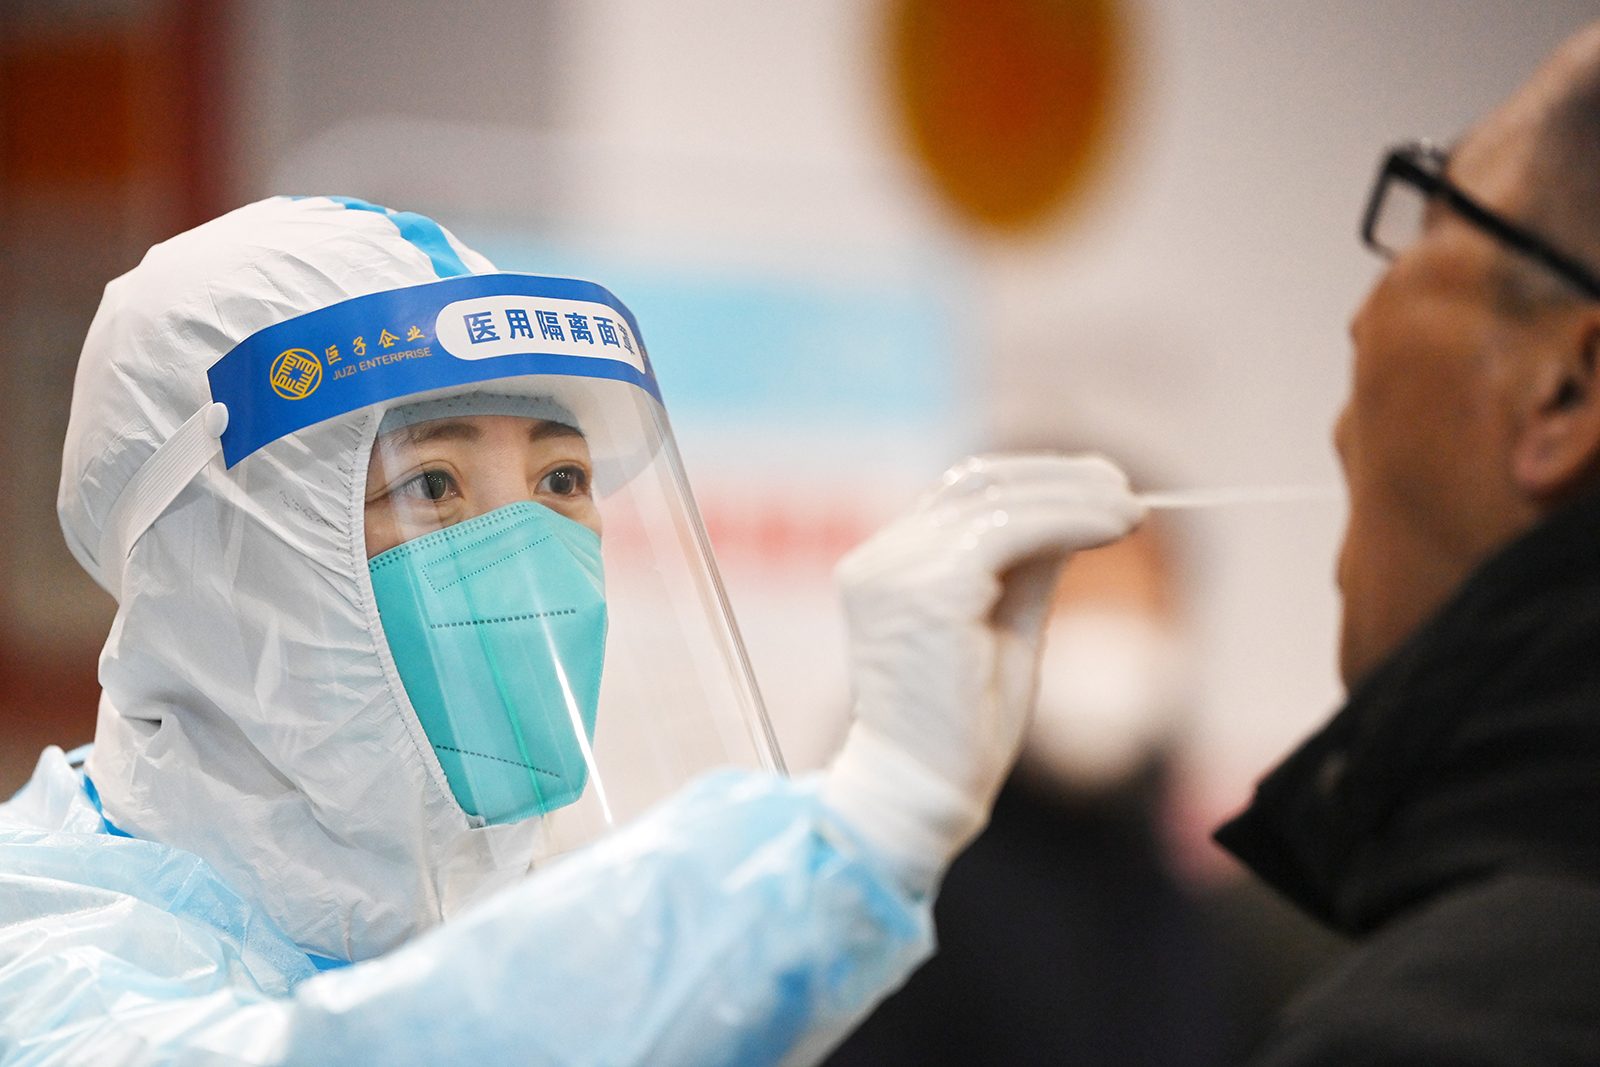 A medical worker collects a nucleic acid sample at a testing site in Harbin, northeast China's Heilongjiang Province, on January 23.